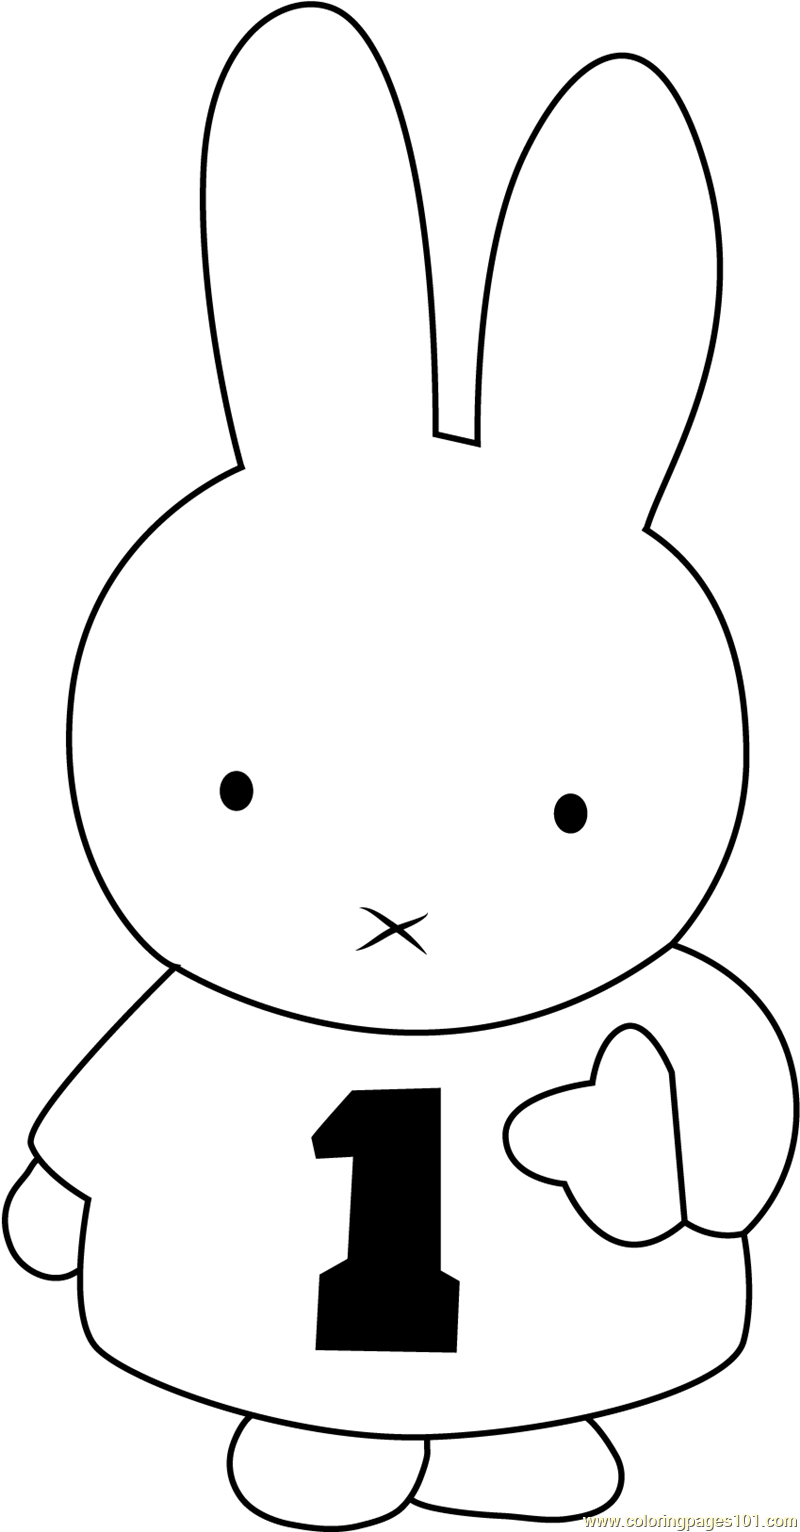 Miffy Number One Coloring Page - Free Miffy Coloring Pages ...